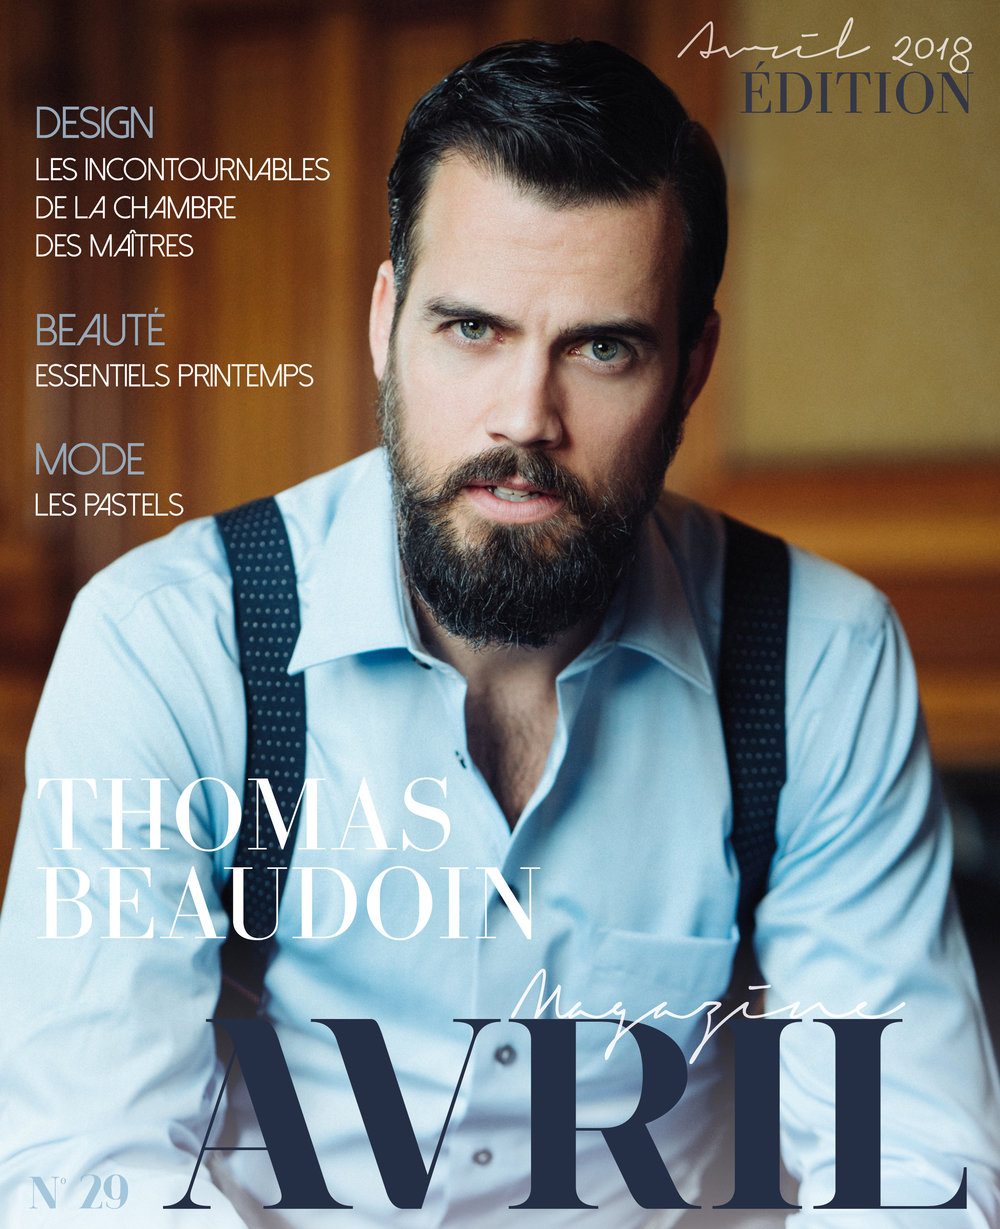 Cover-avril-2018-avec-thomas-beaudion-avril-magazine-.jpg